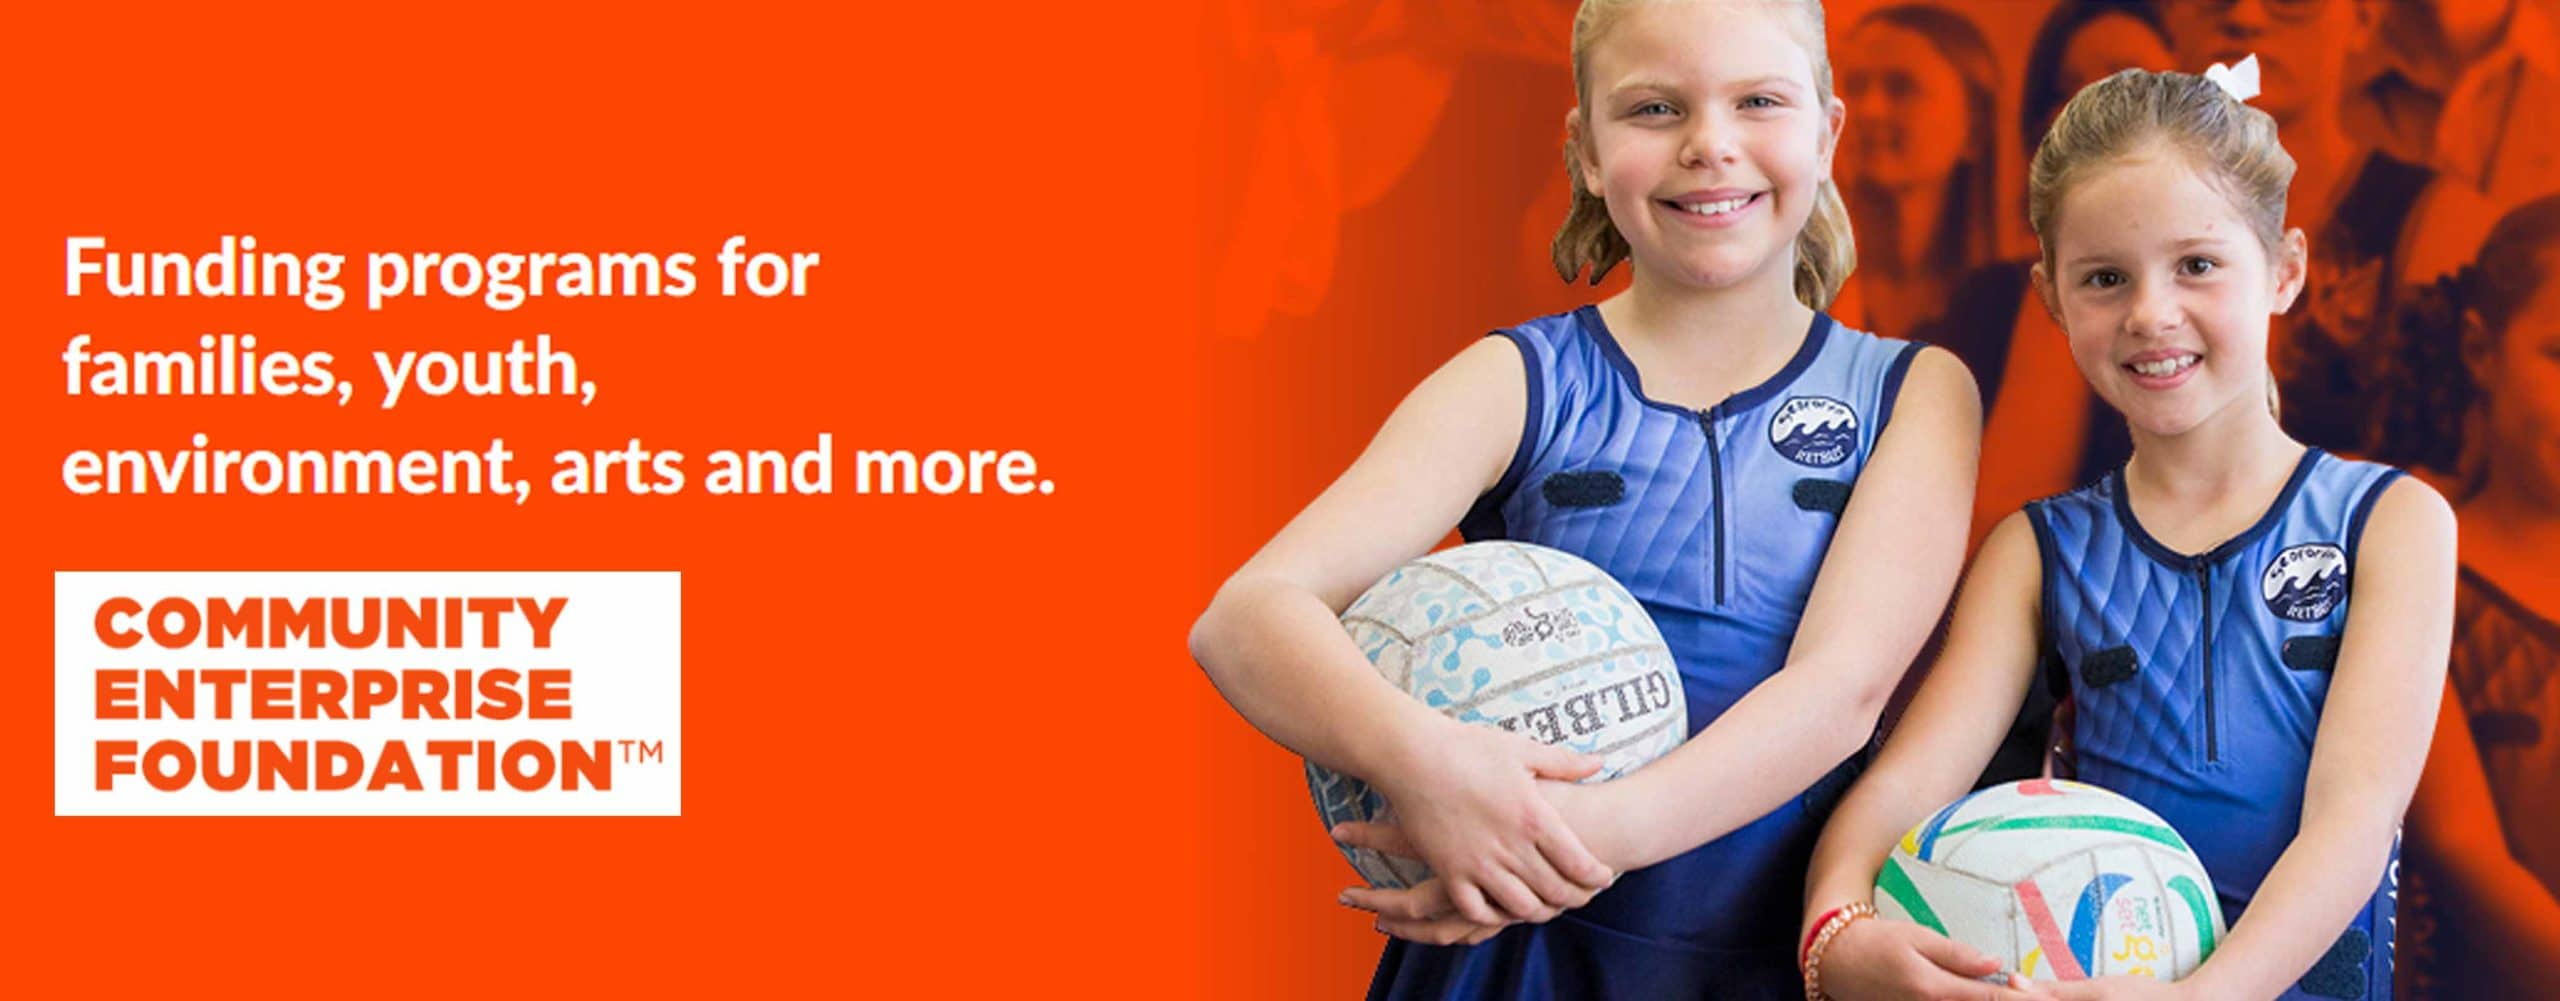 Orange background. two female netballers smile at camera. Text reads funding programs for families, youth, enviroment, arts and more. Logo for community enterprise foundation is below text